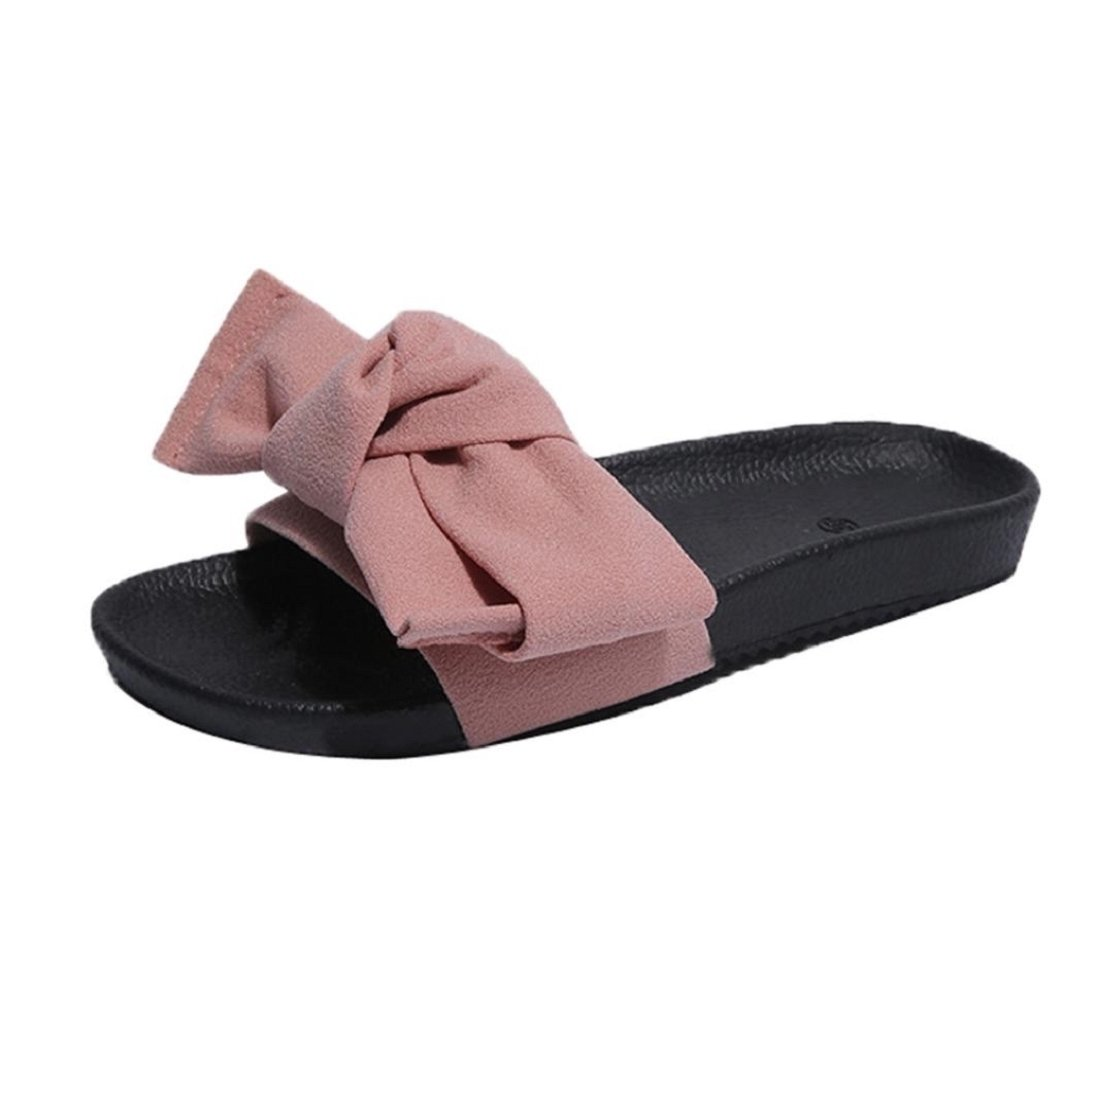 Fheaven Women Summer Wedge Sandals Beach Shoes Flip Flops Platform Slippers with Bow (US:7(China size:39 ), Pink)